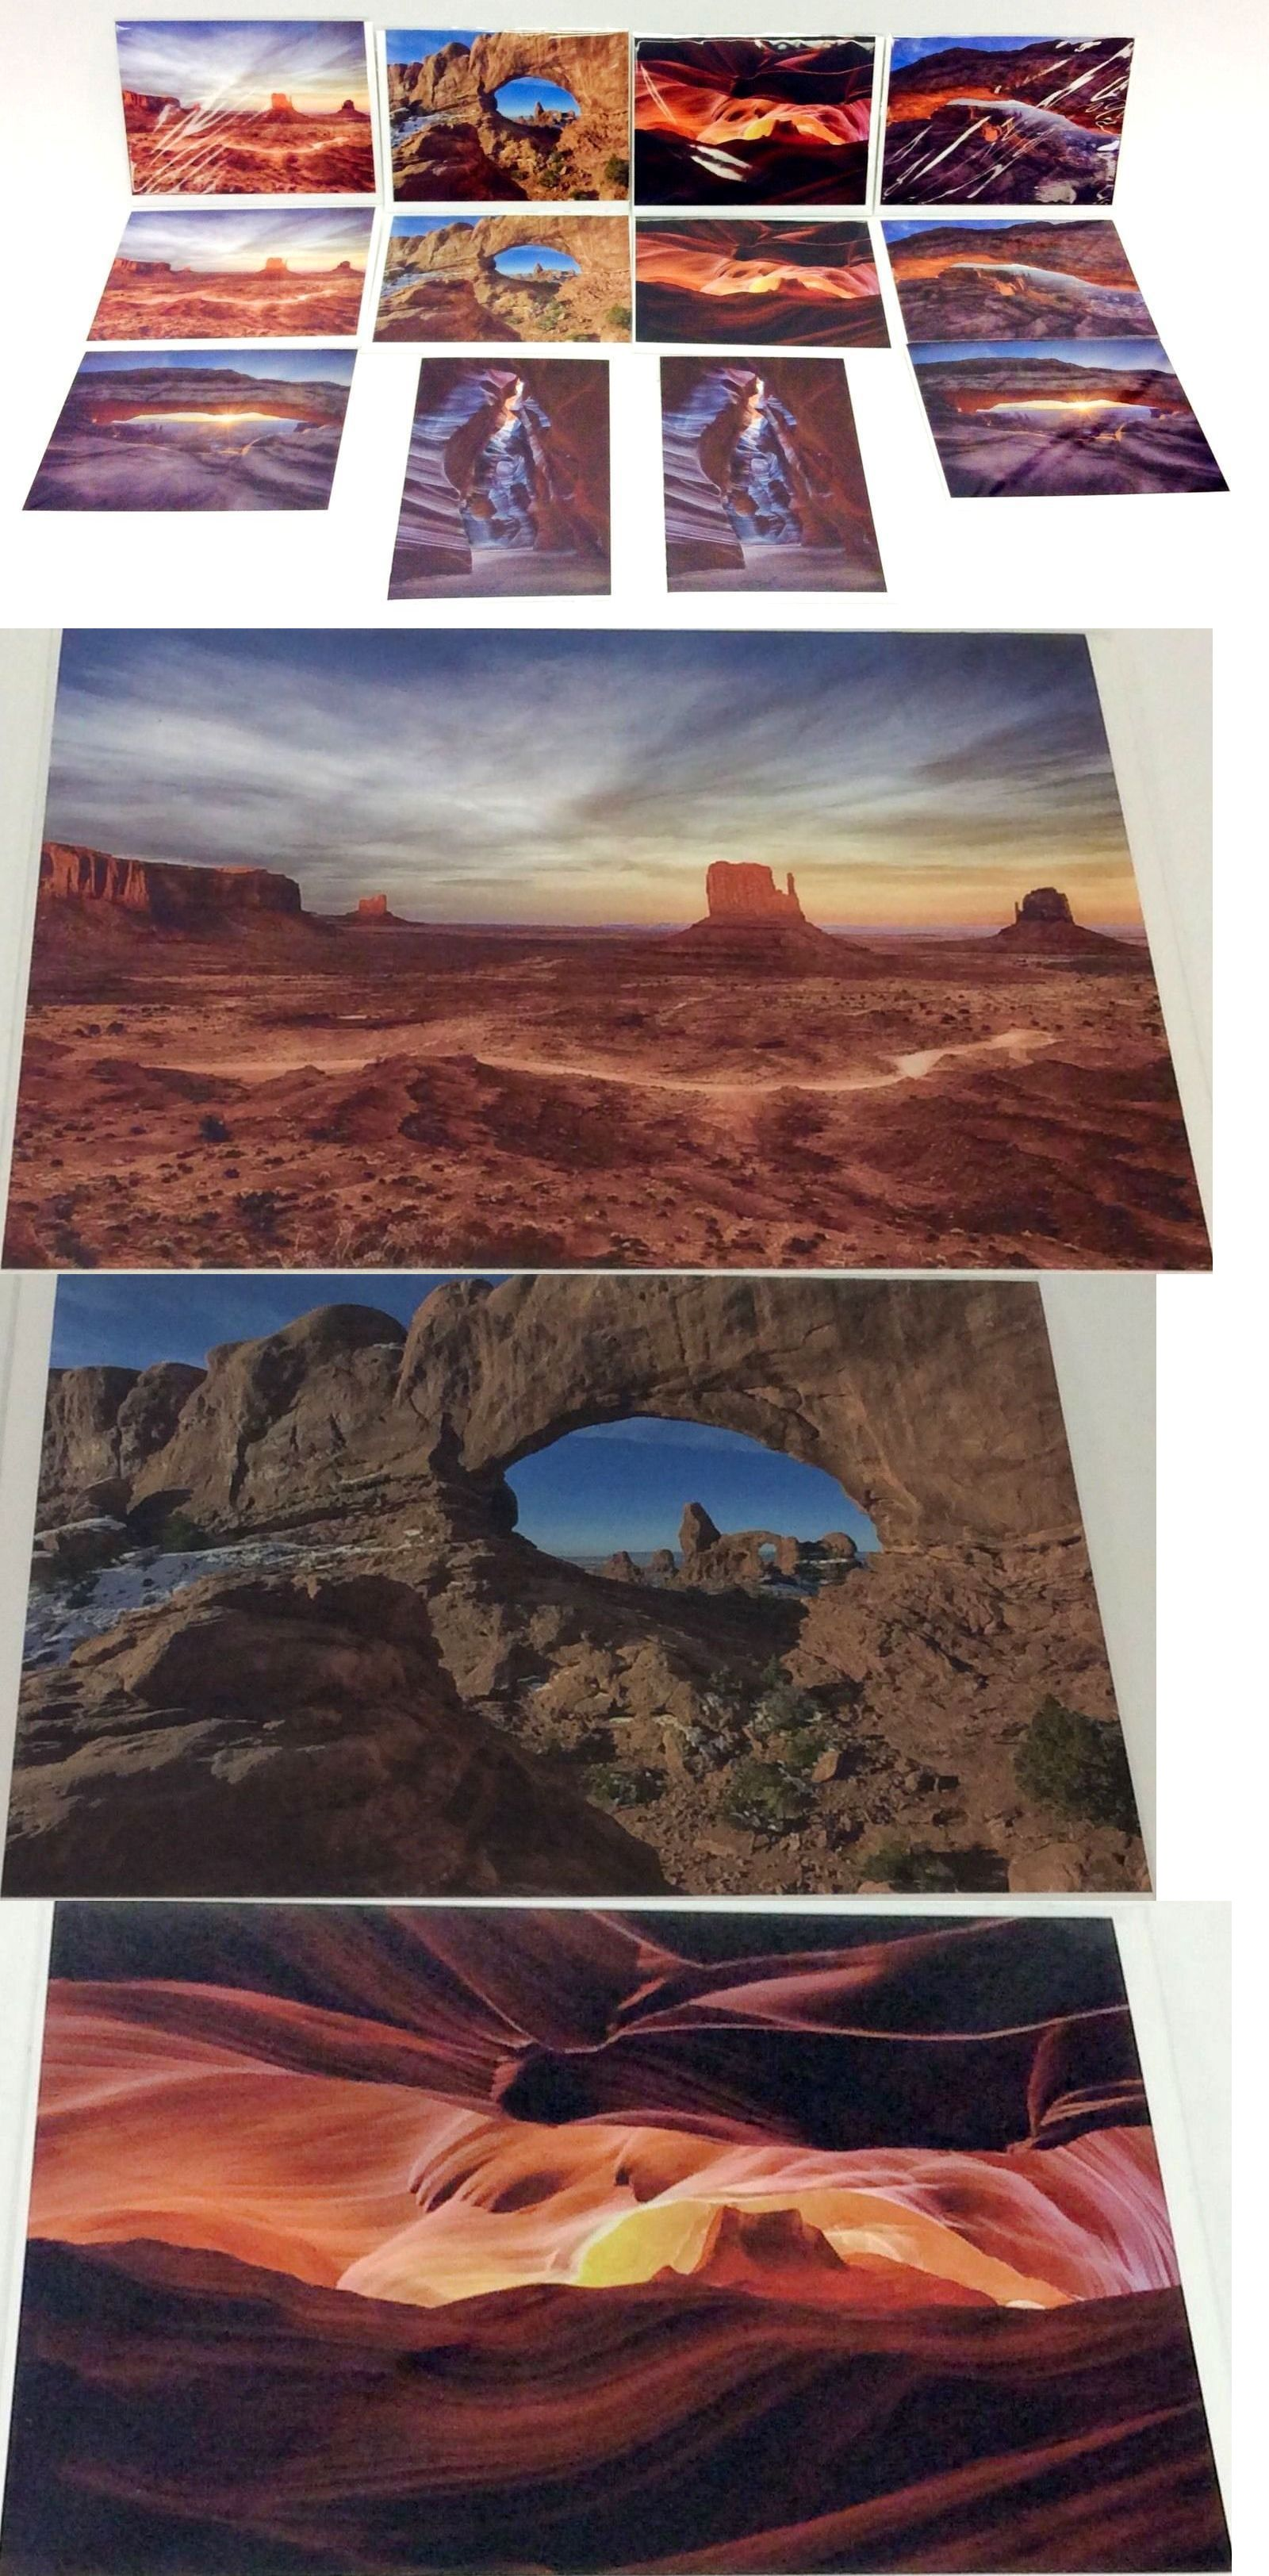 Greeting Cards And Gift Tags 146324 Photographers Variety Scenery